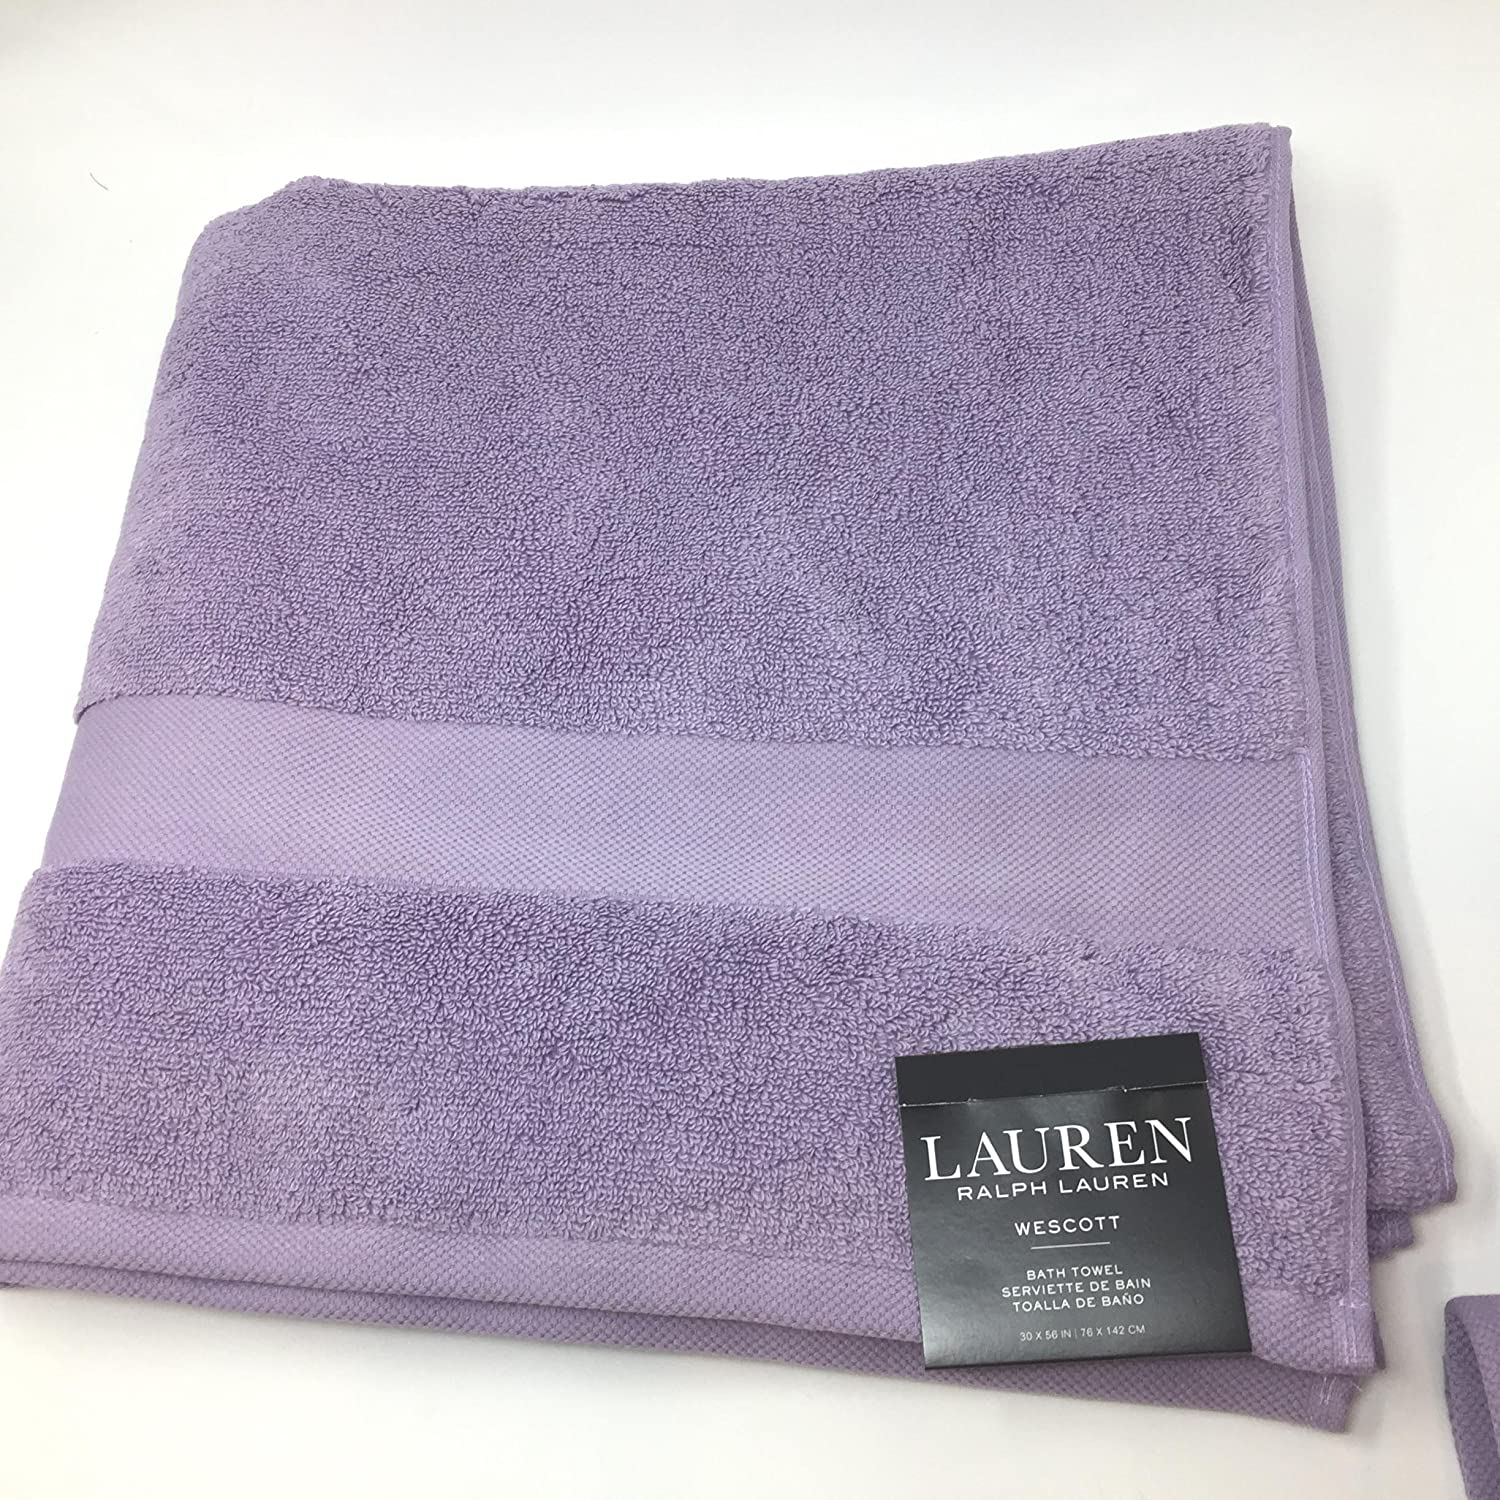 Amazon.com: Lauren Ralph Lauren Wescott Bath Towel Duchess Lilac 30 x 56: Home & Kitchen